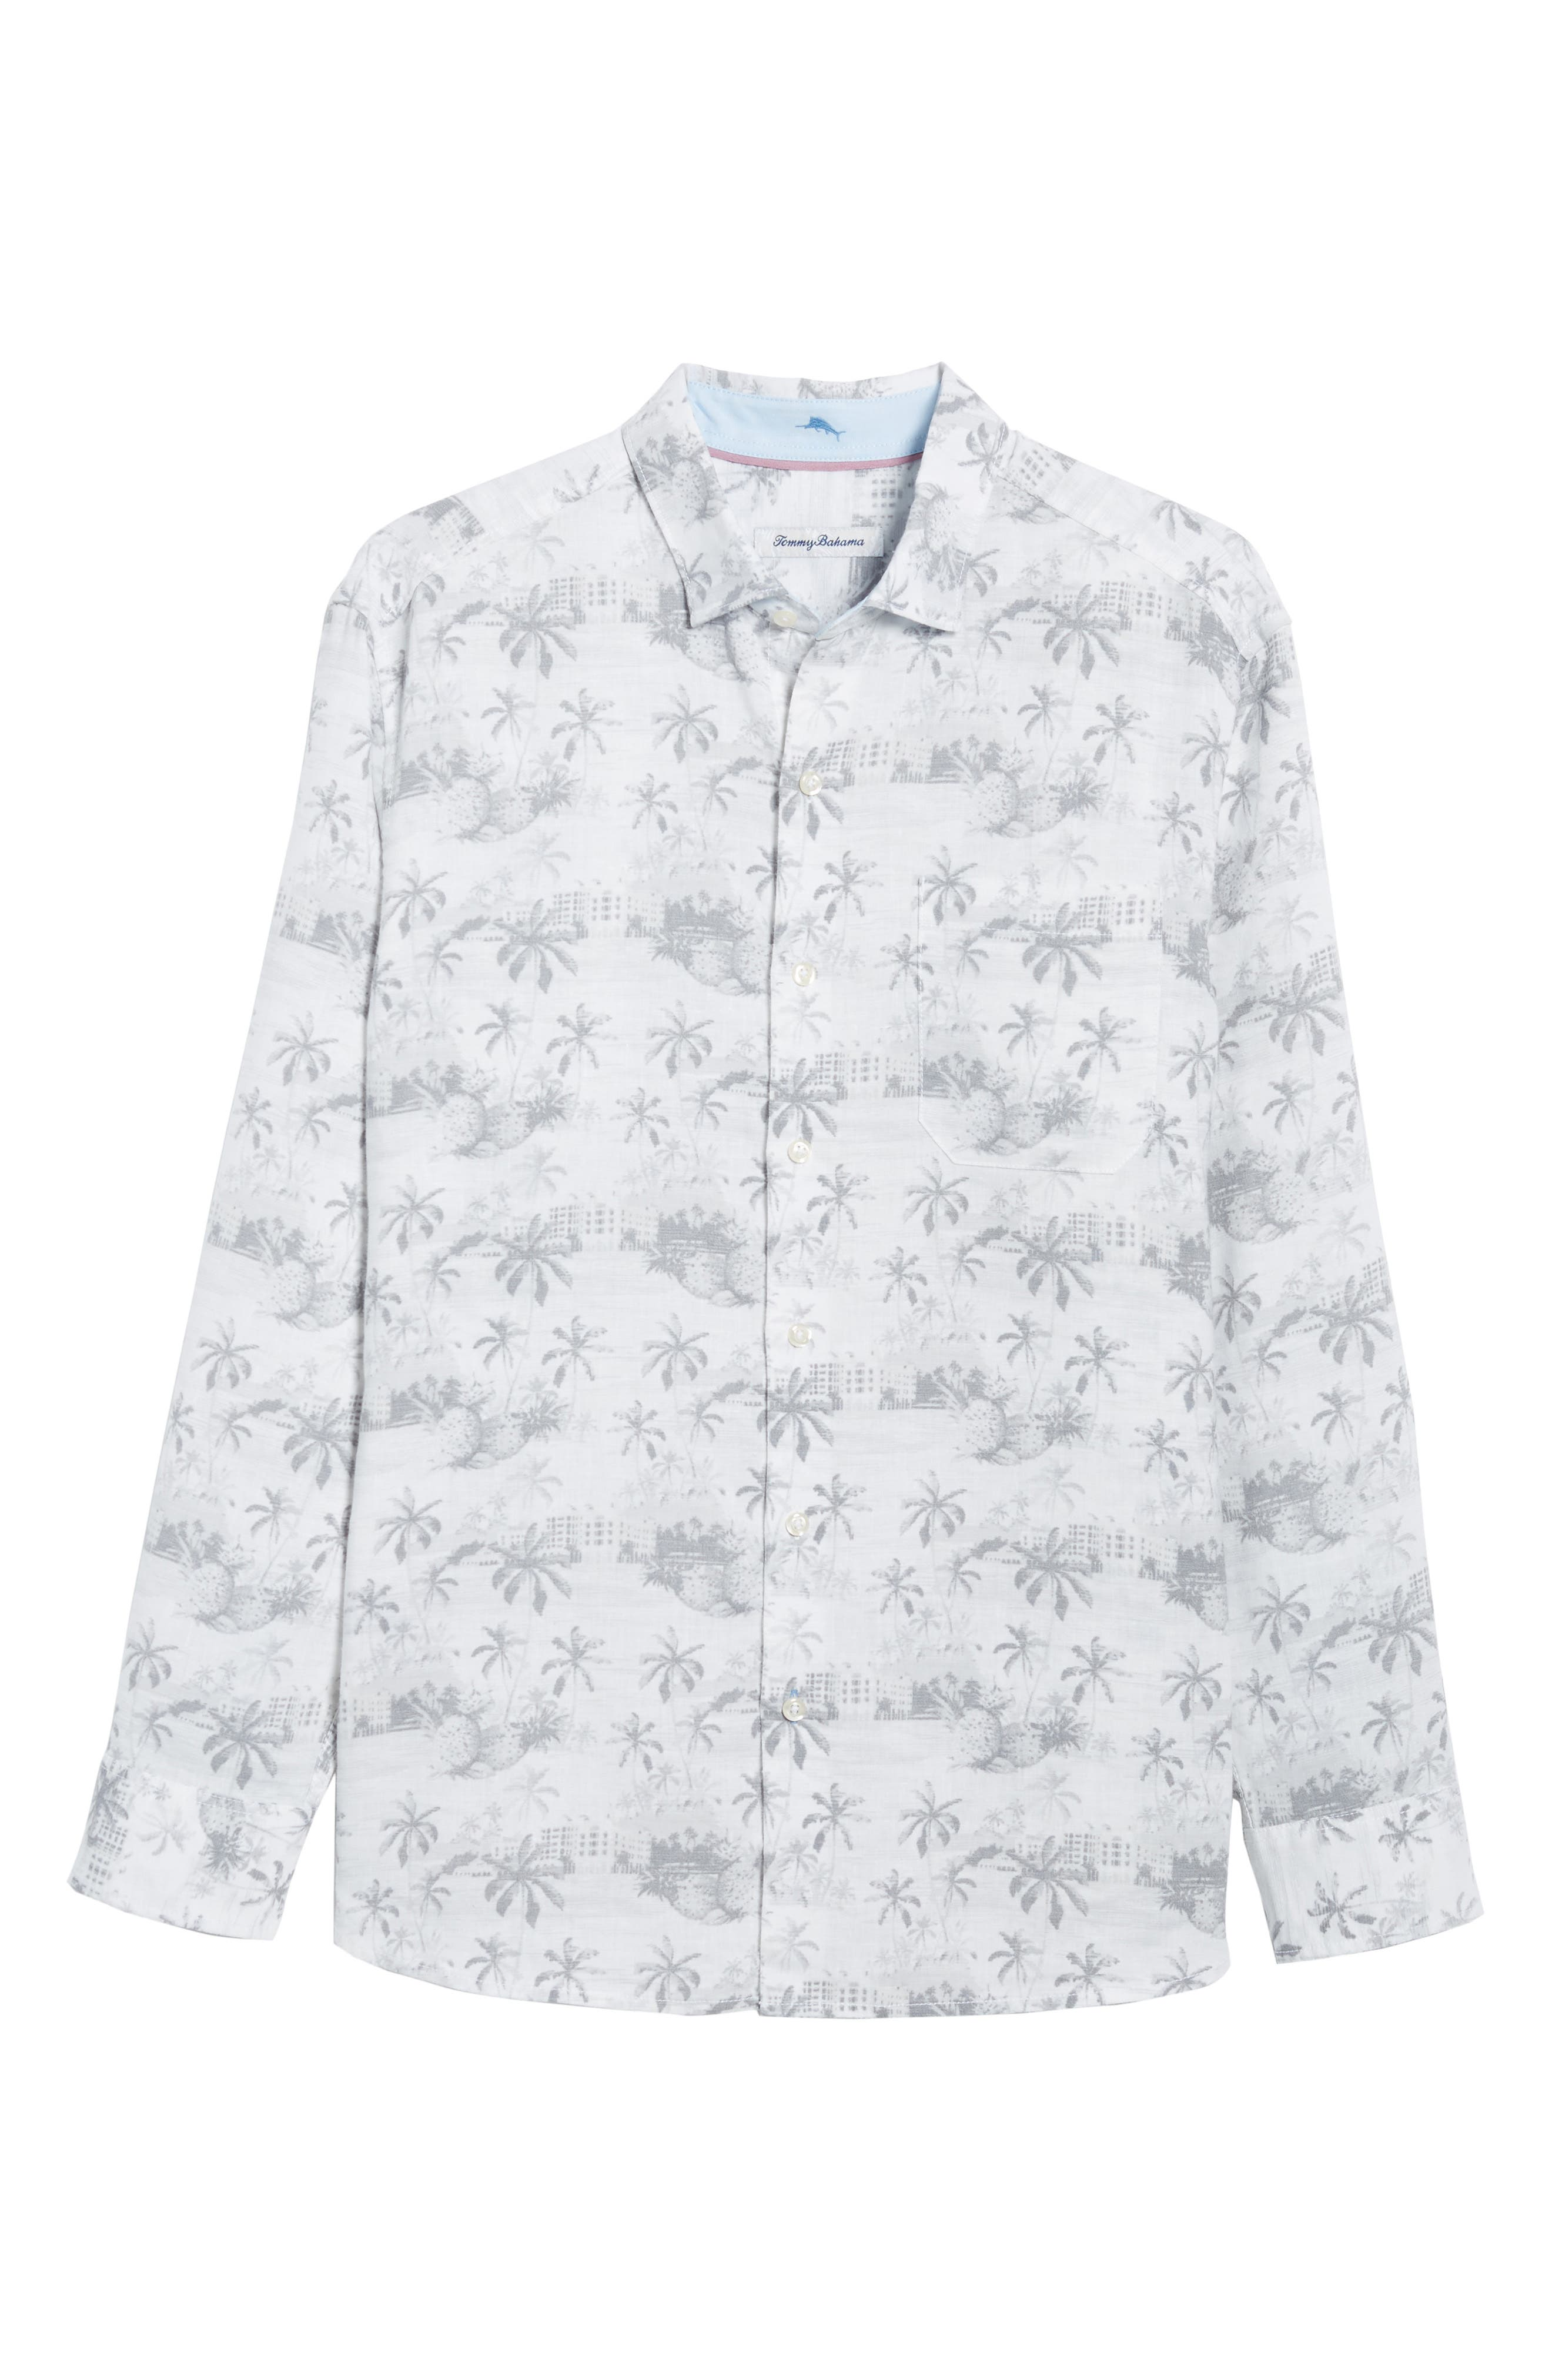 Tropical Toile Sport Shirt,                             Alternate thumbnail 6, color,                             050